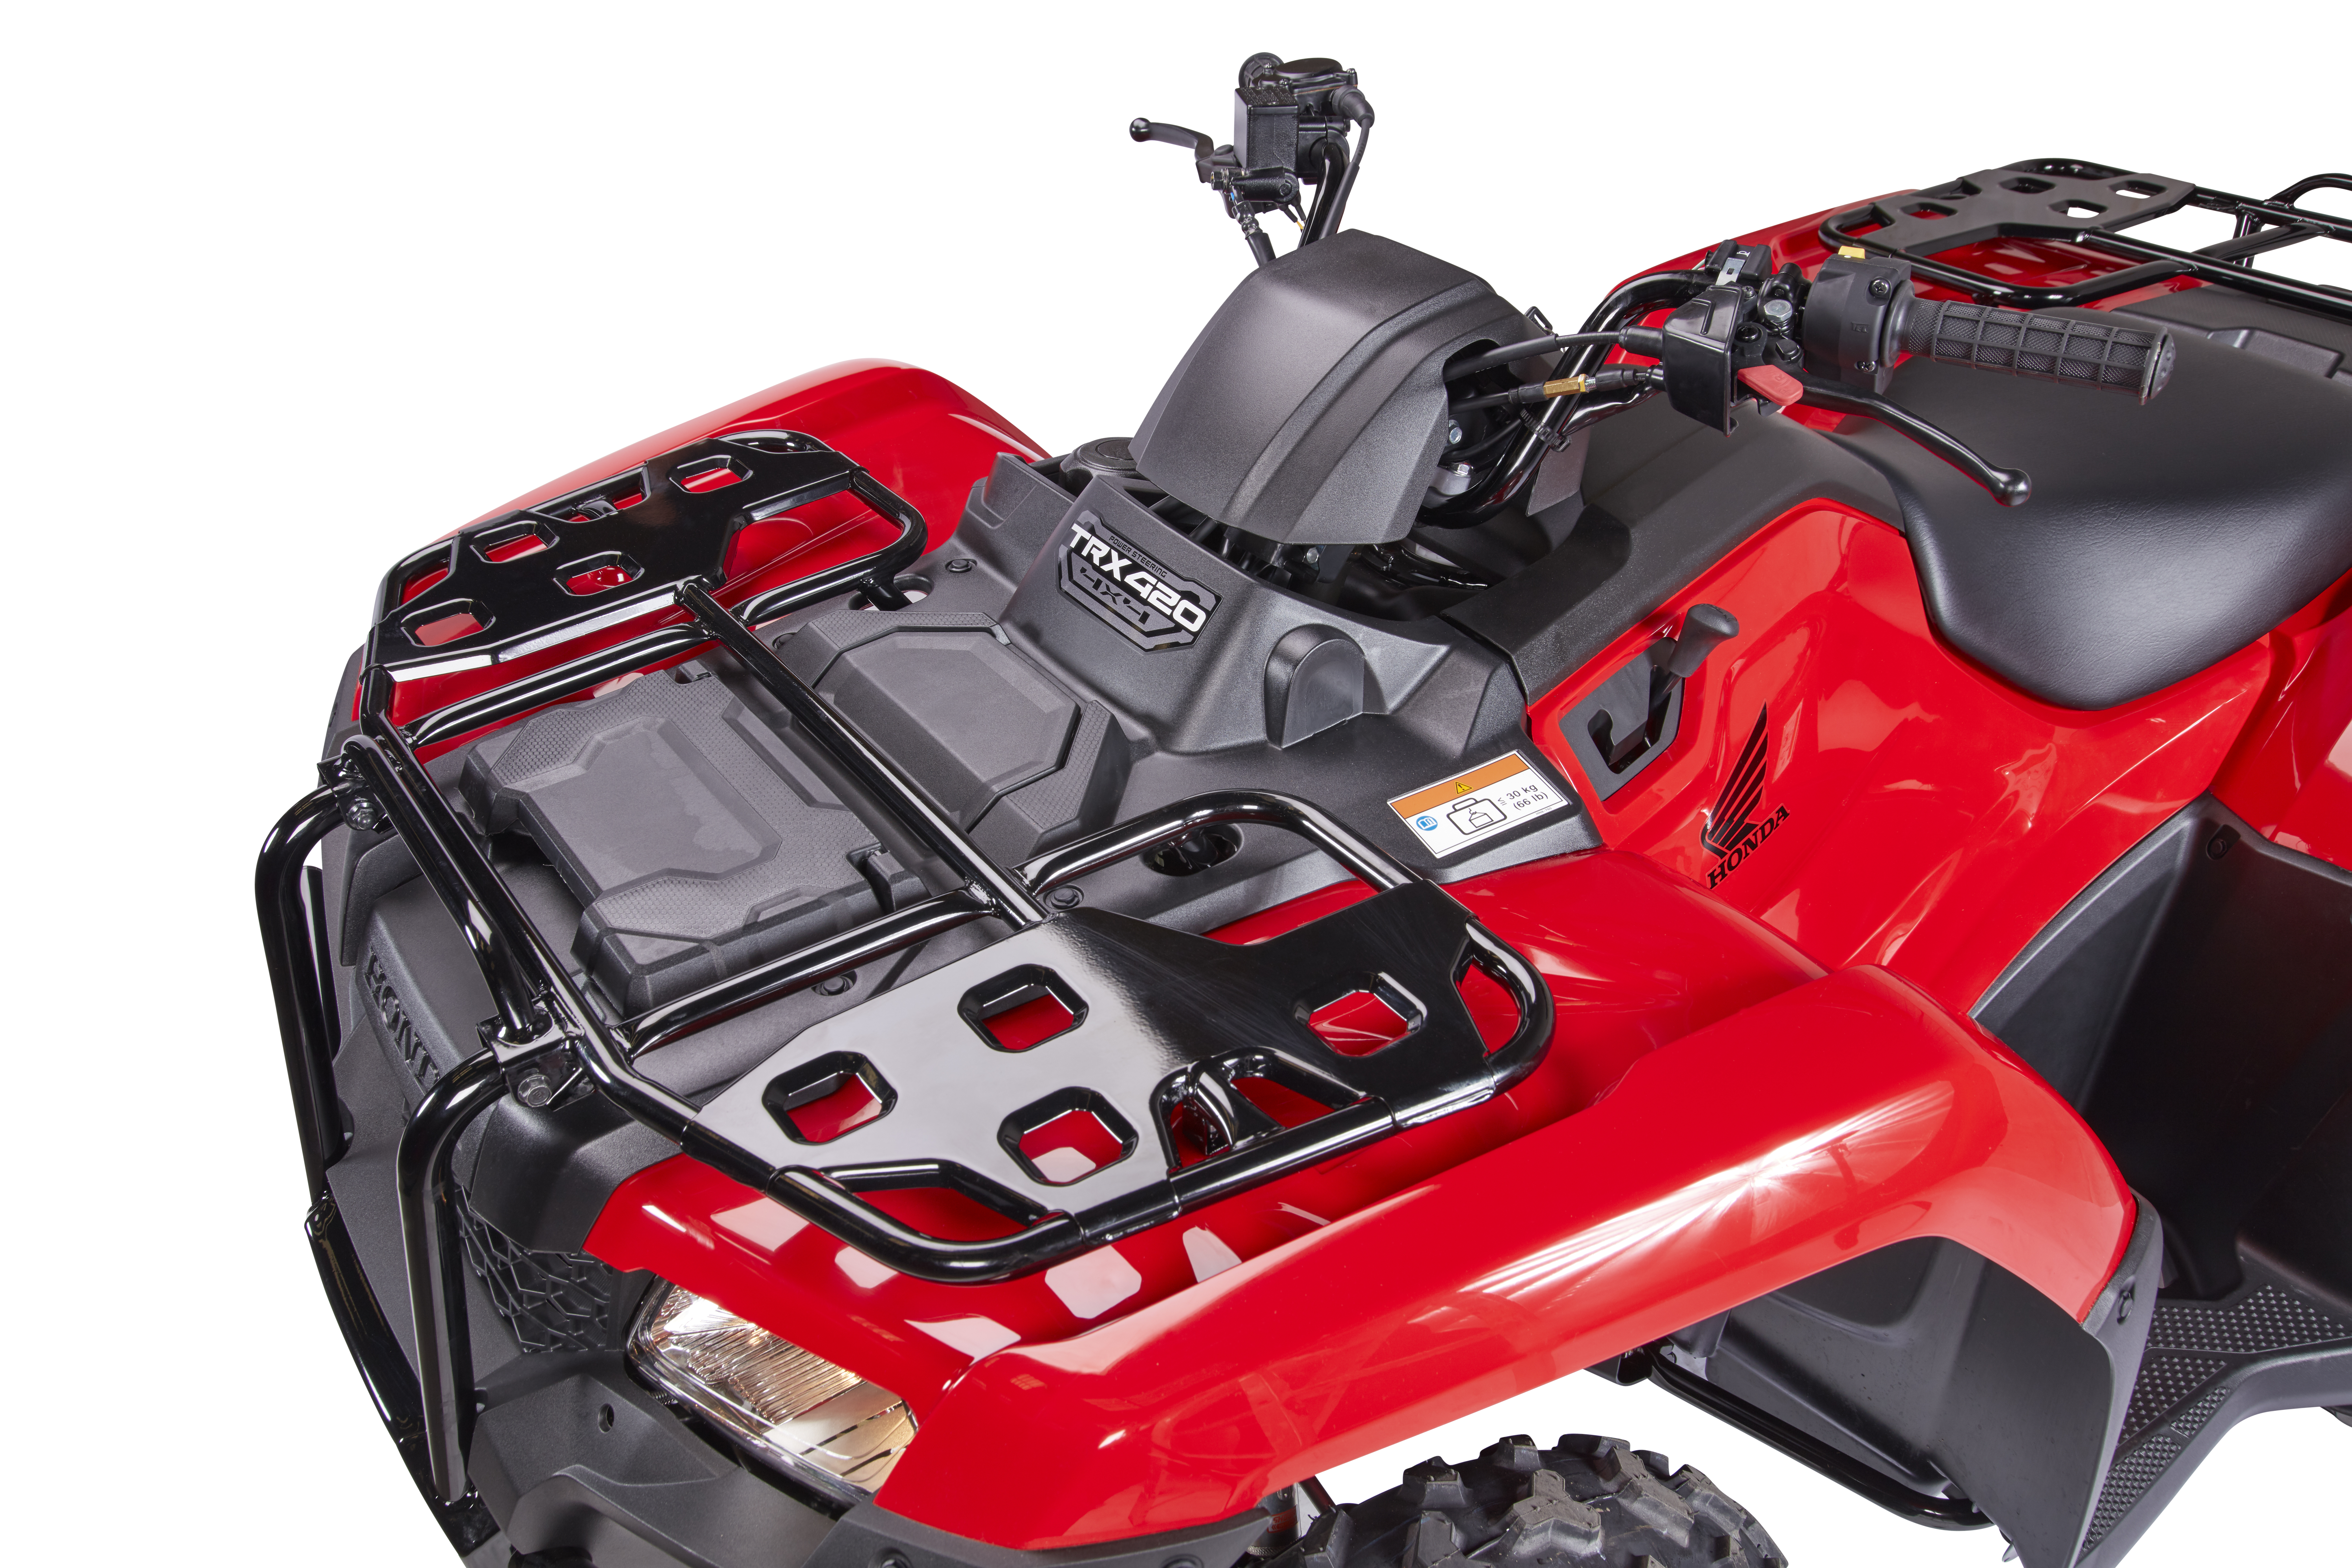 Image of 2020 Fourtrax 420 4wd Auto range